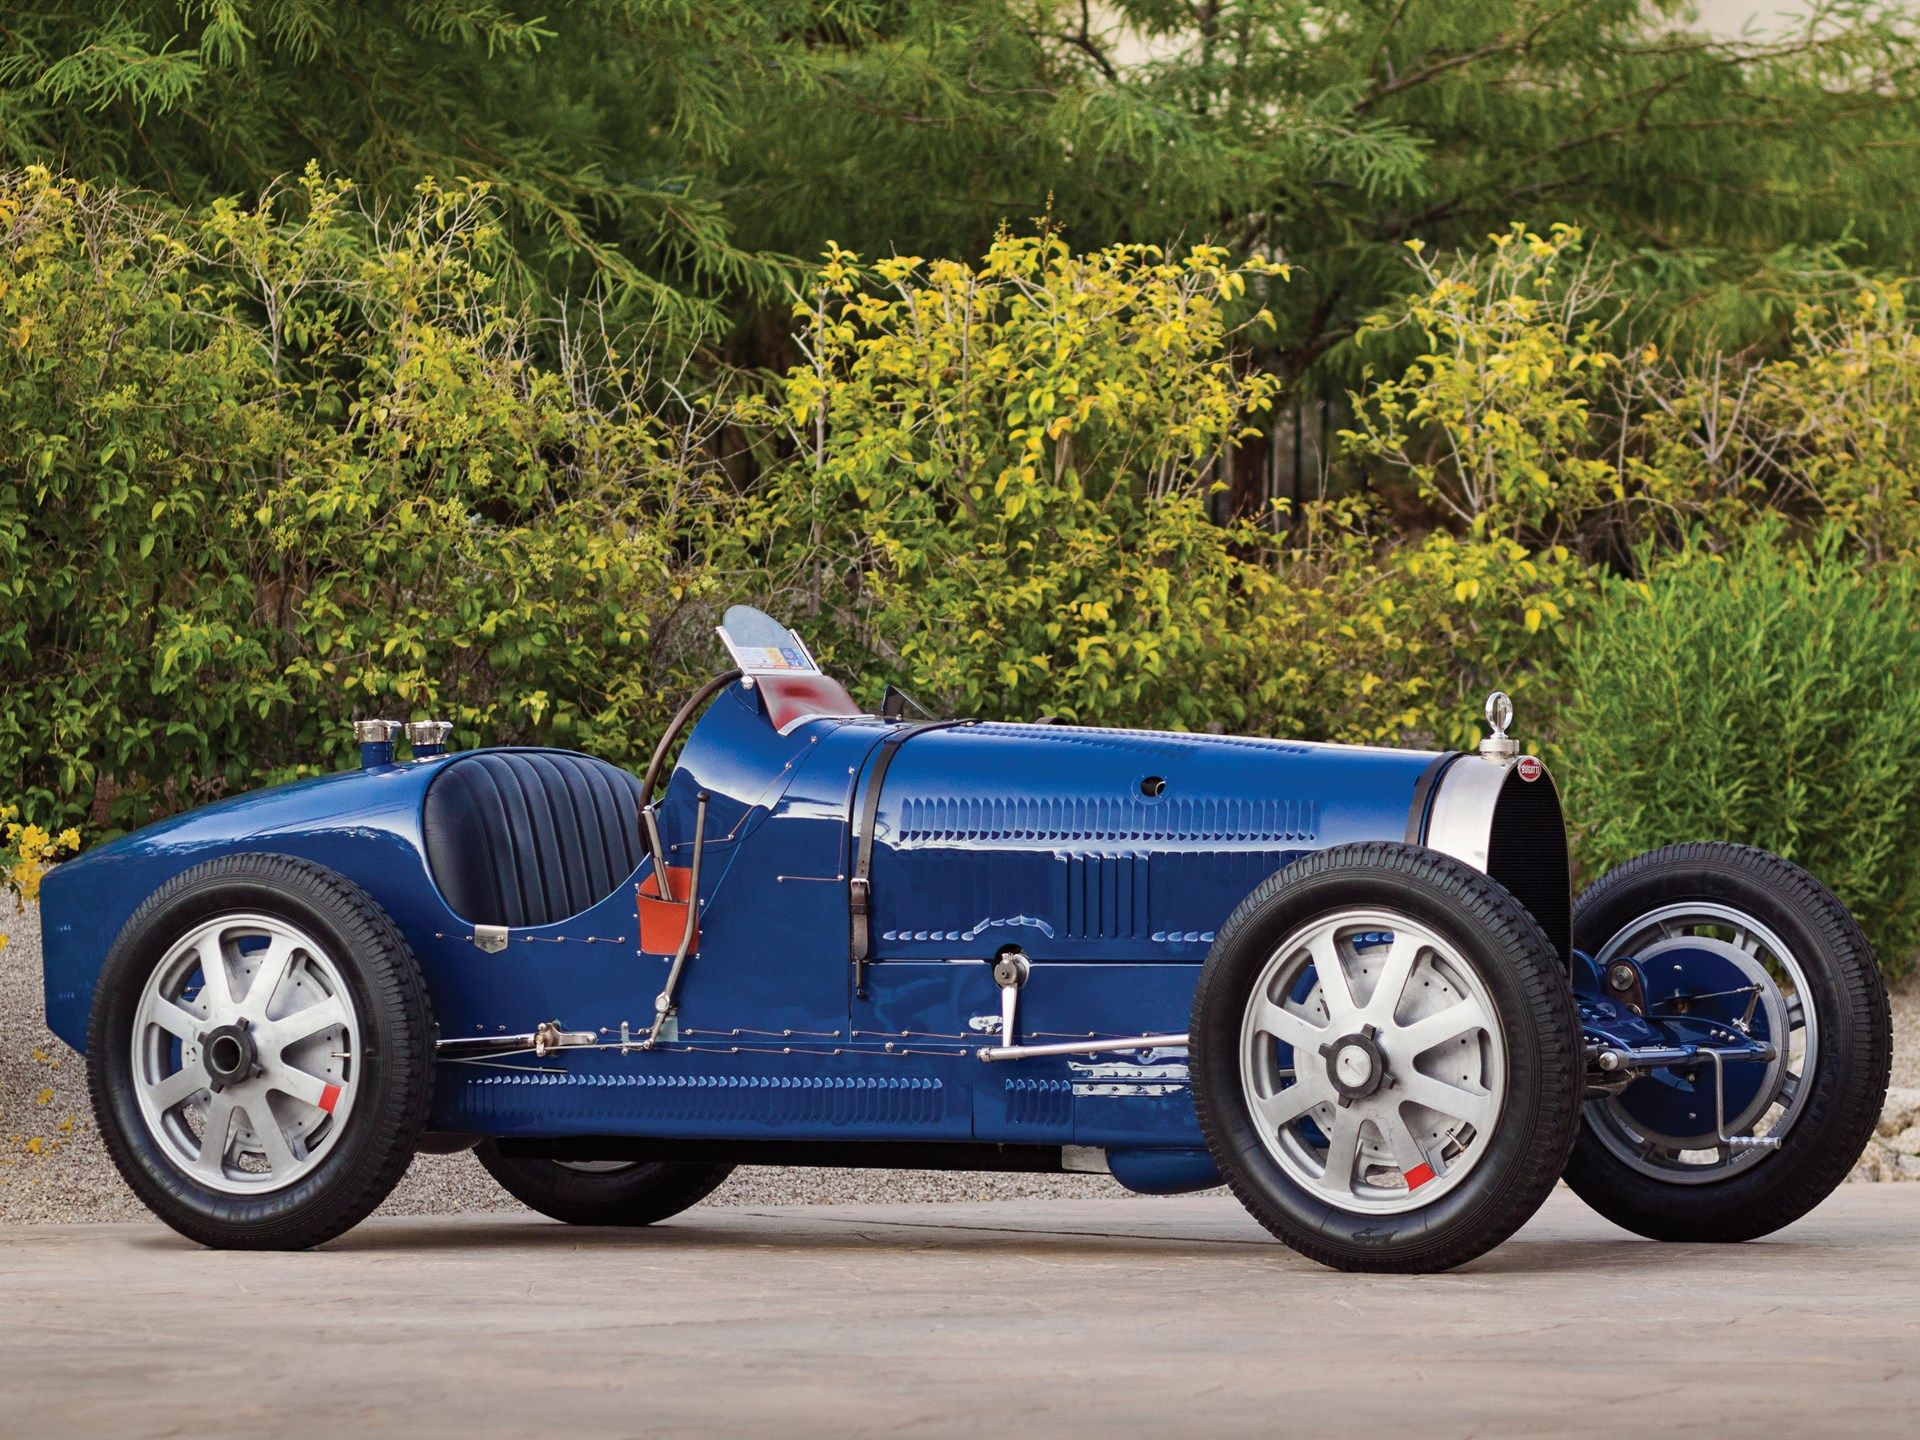 The Bugatti Type 35 Series Was Considered One Of The Most Succesful Race Cars Ever Produced With Over 1 000 Race Wins To It Bugatti Cars Classic Cars Race Cars